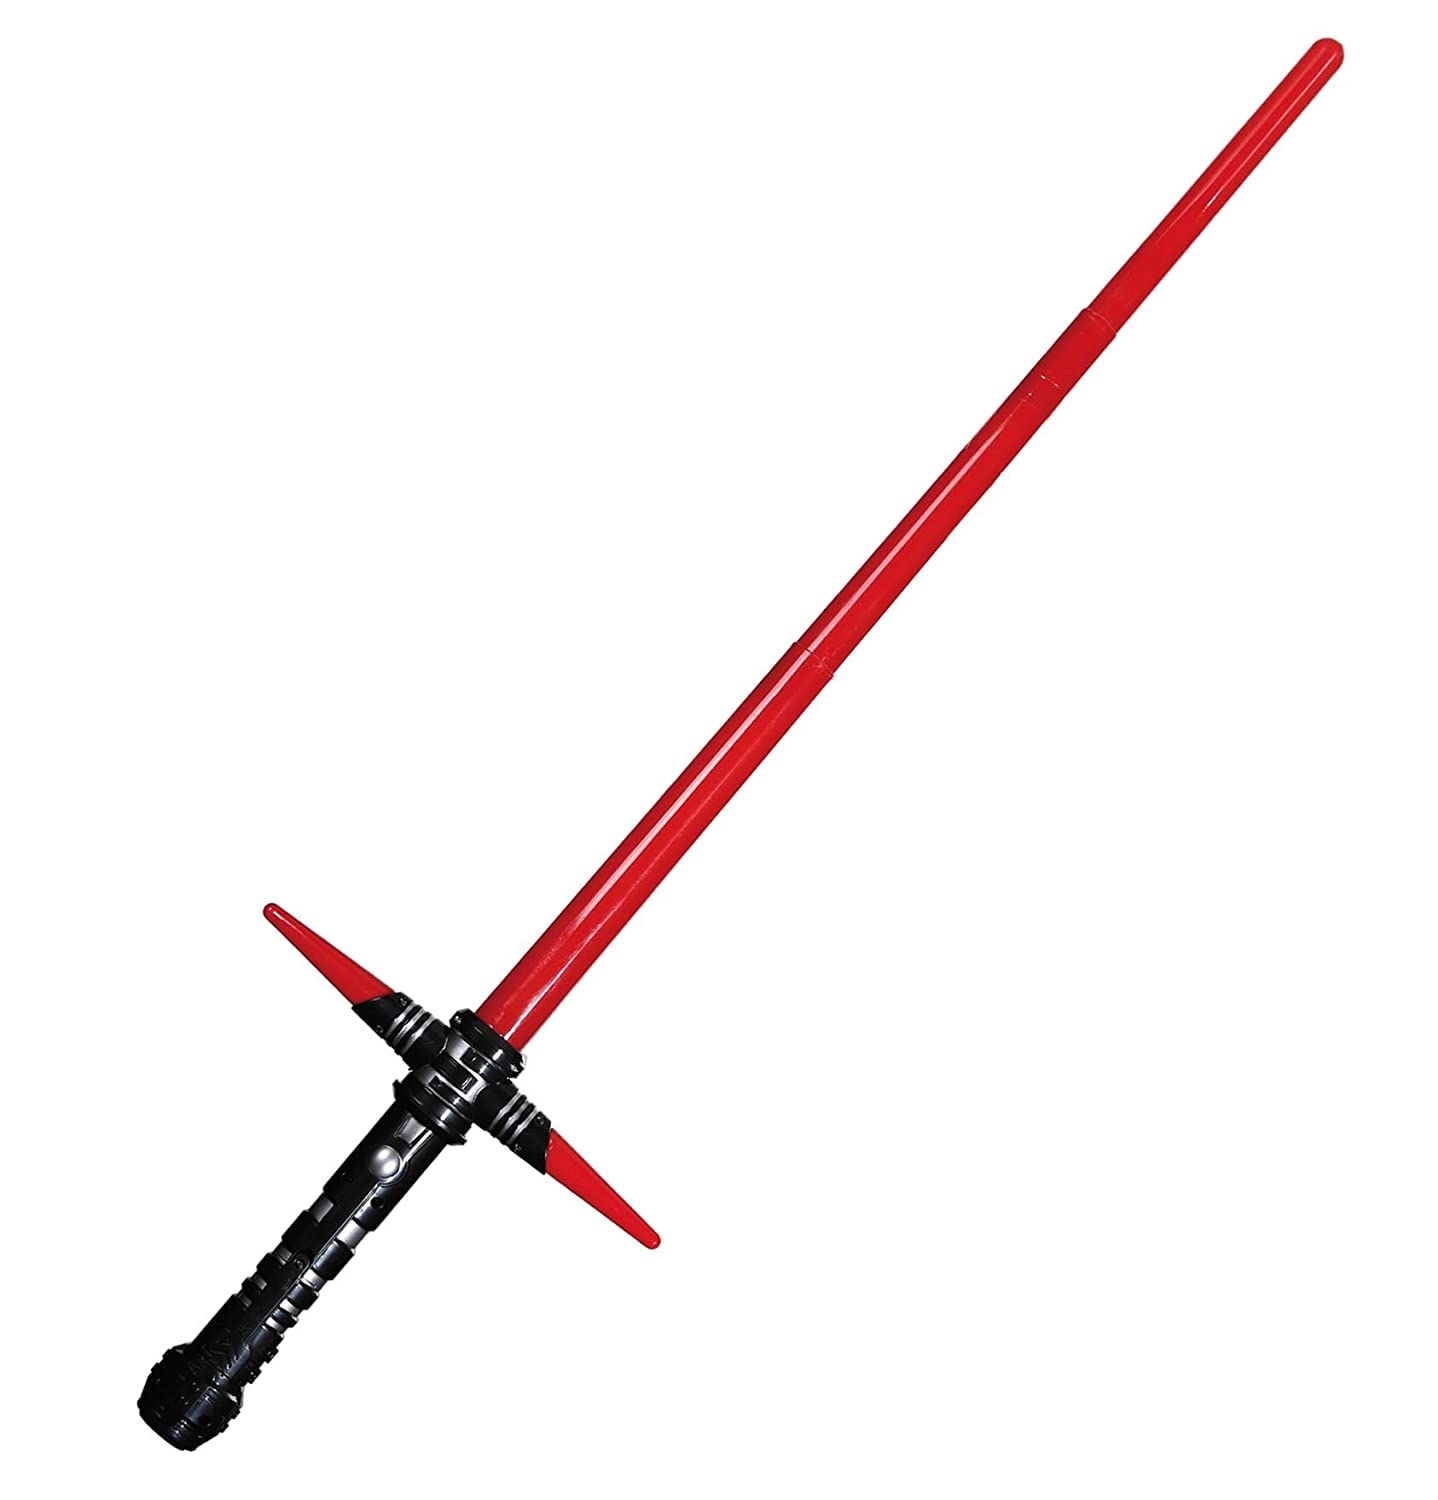 Gifts Galore Store Excellent present gift. Kids Light Saber with sound, 81.5cm. Endless fun Gifts For All Emporium